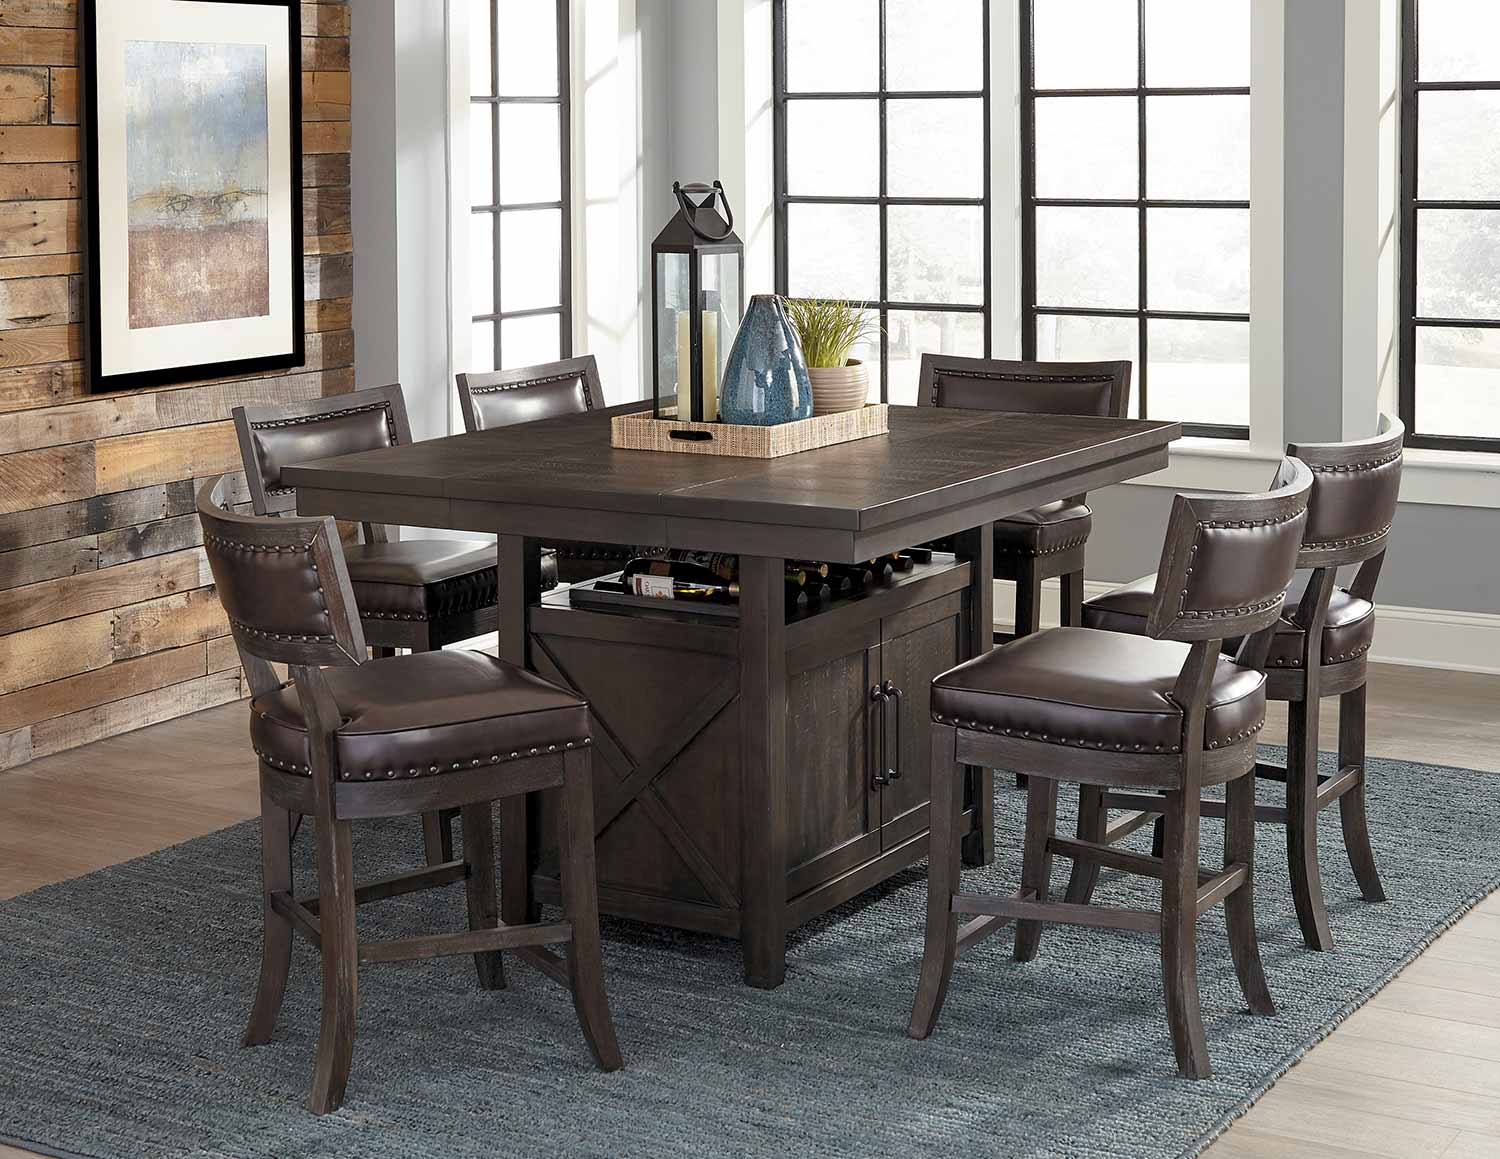 Homelegance Oxton Counter Height Dining Set - Rustic Brown